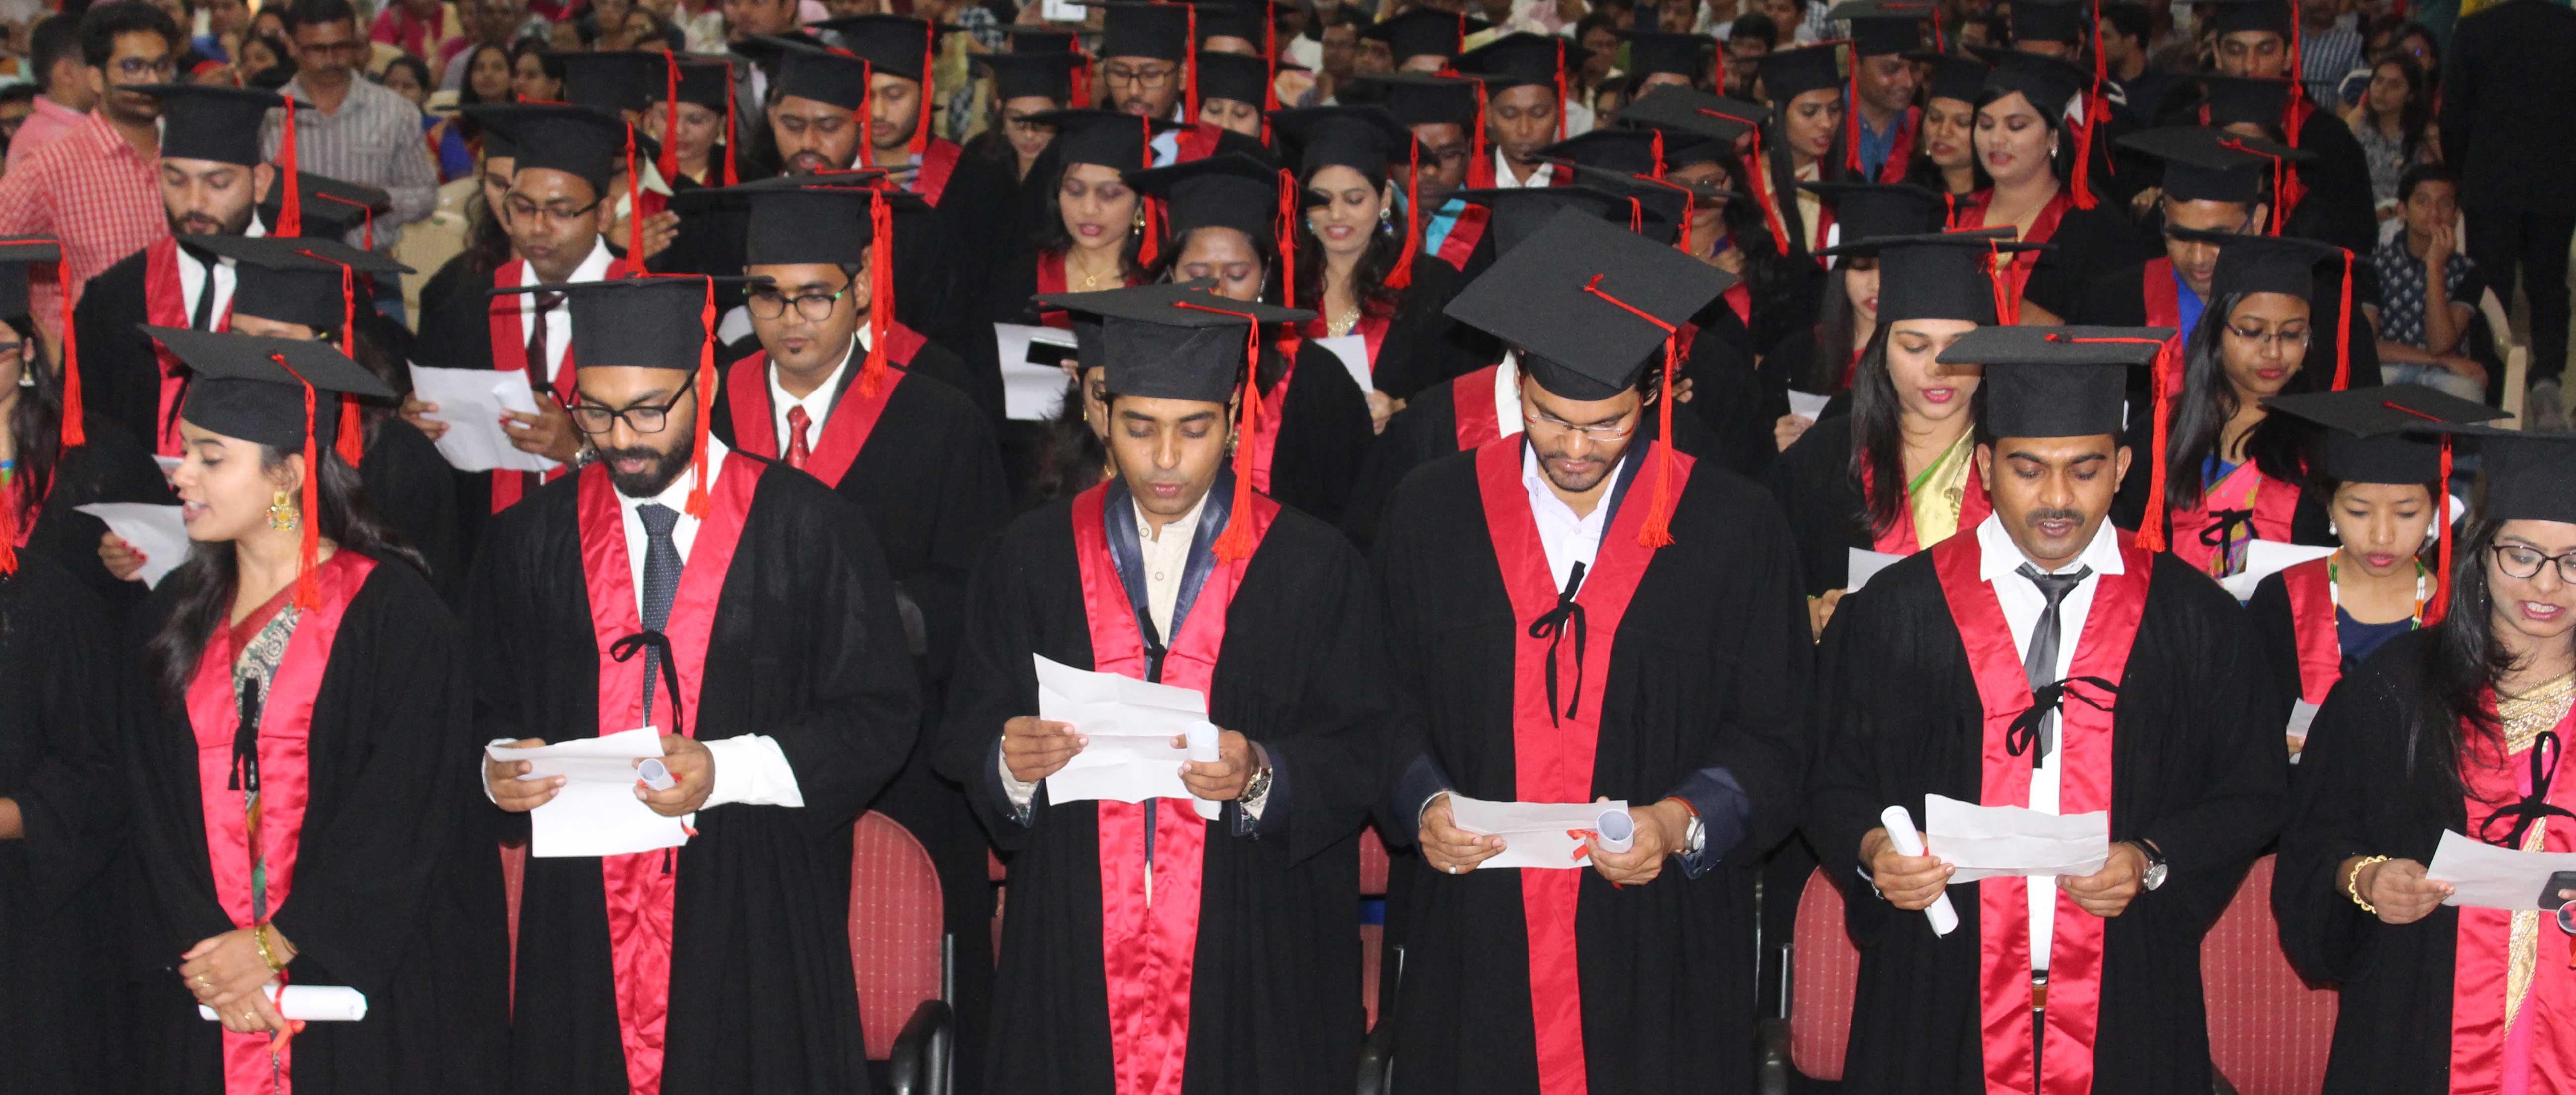 MGIMS celebrates Graduation Ceremony of the Class of 2011